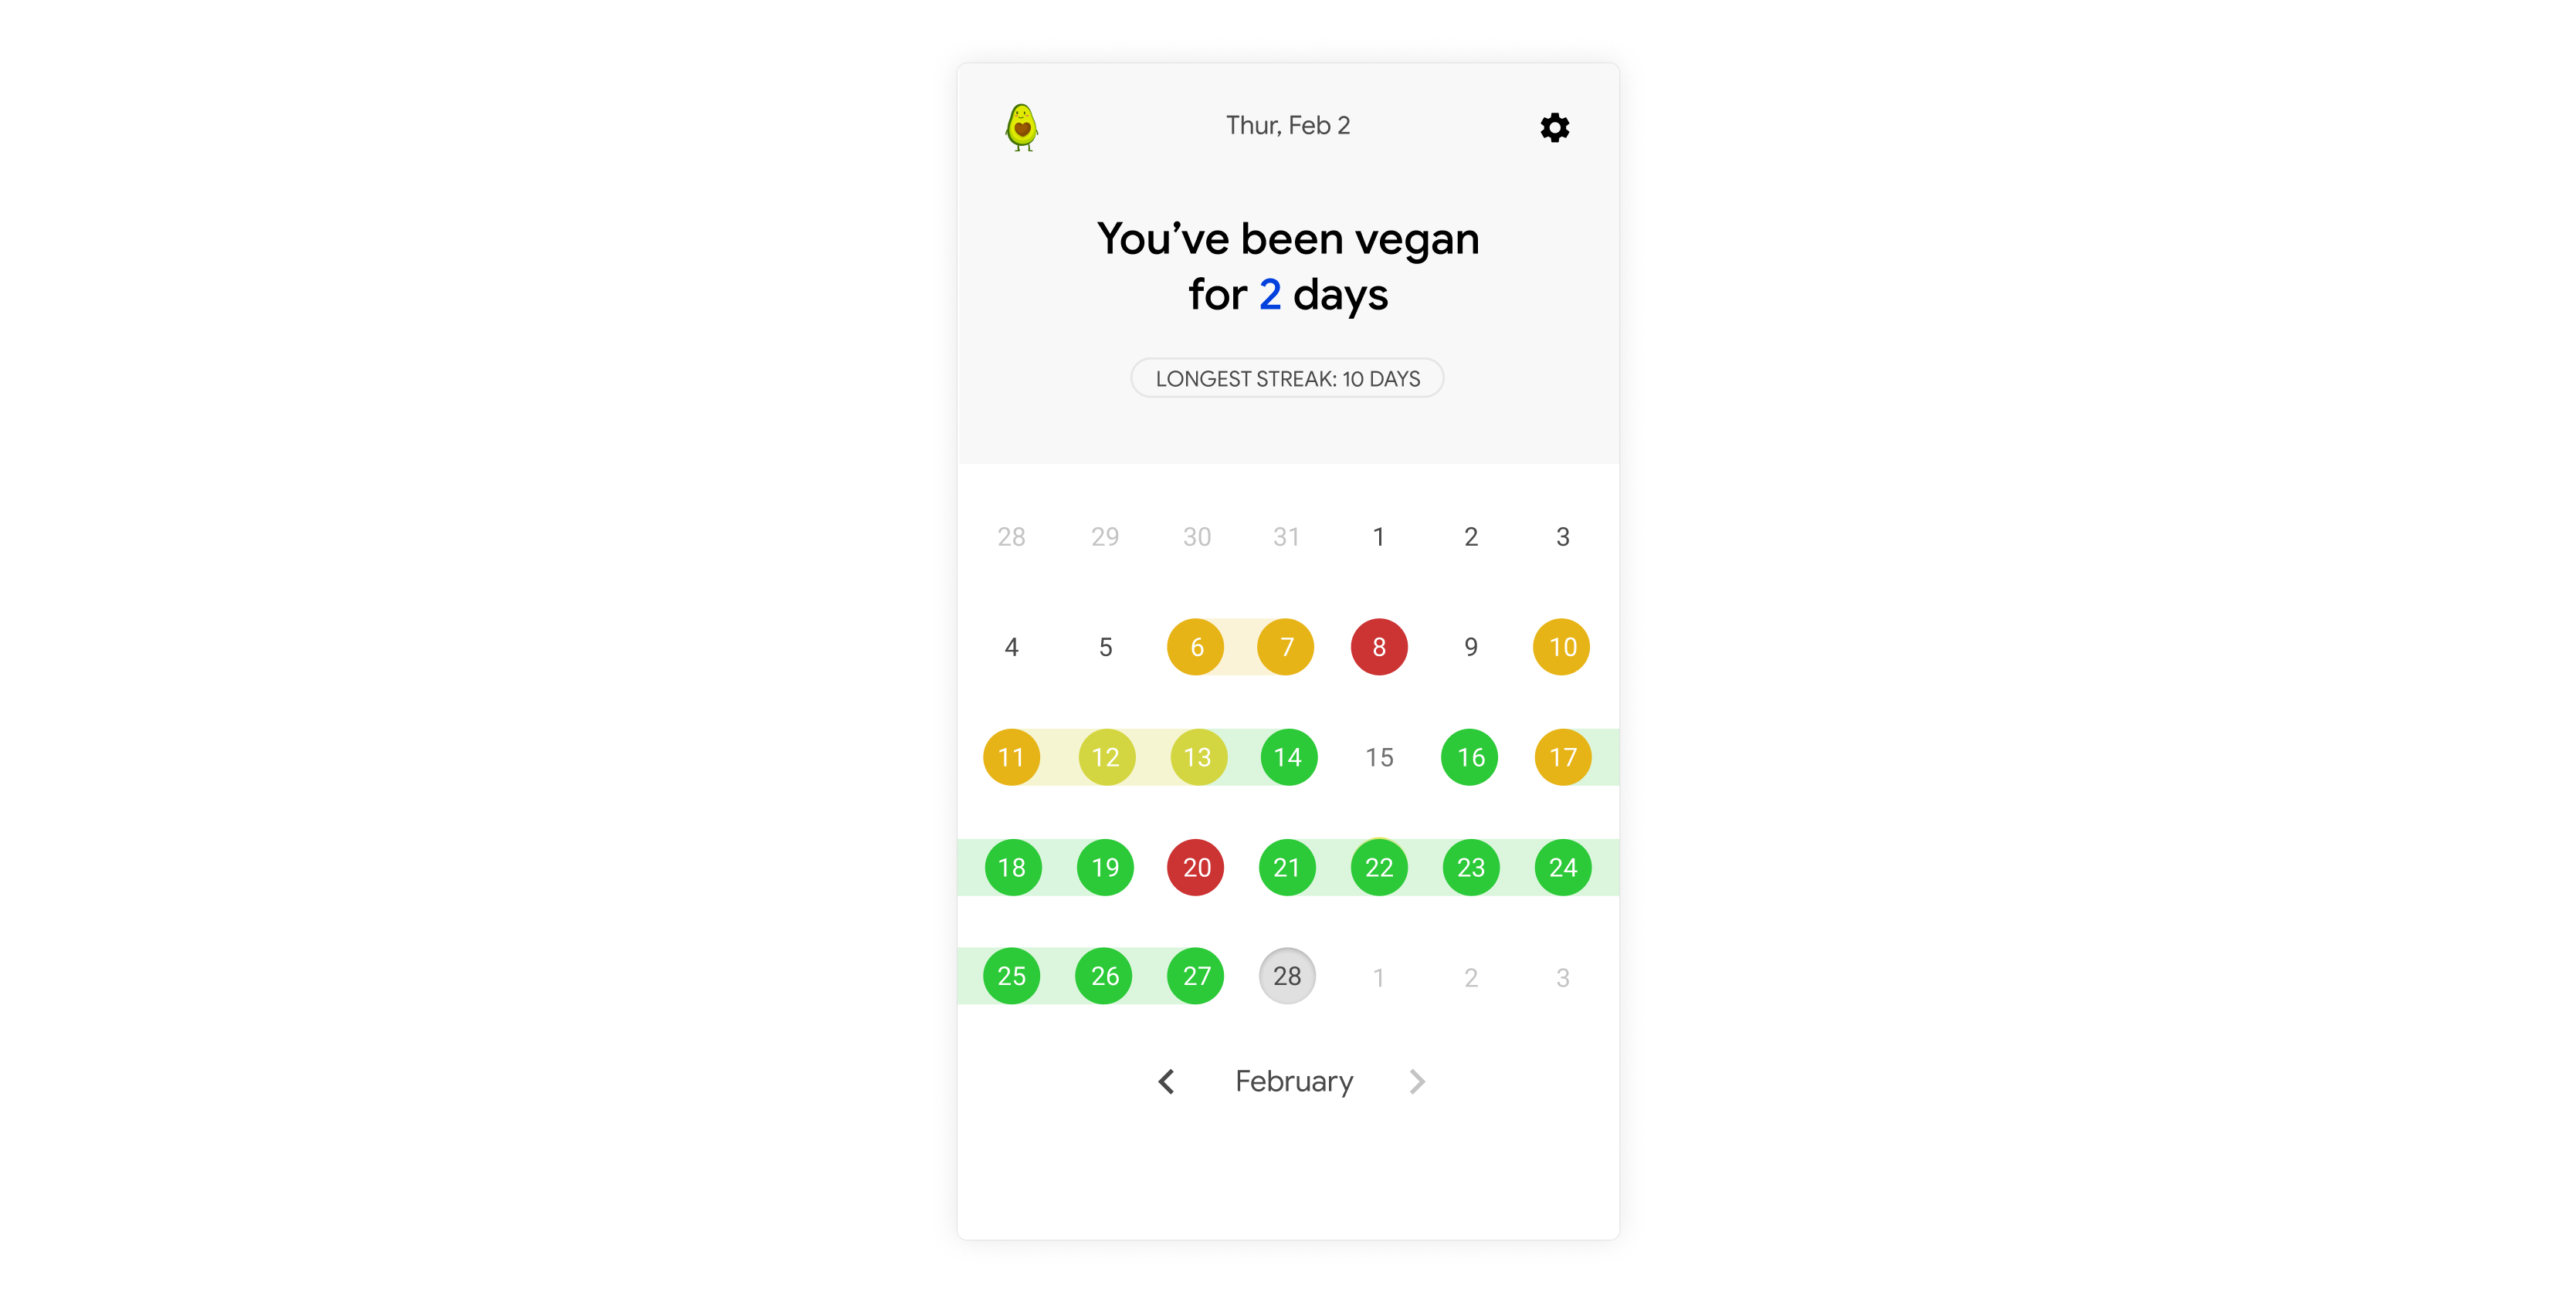 'You've been vegan for 2 days' is much more human than '3 Days — Current Streak'.